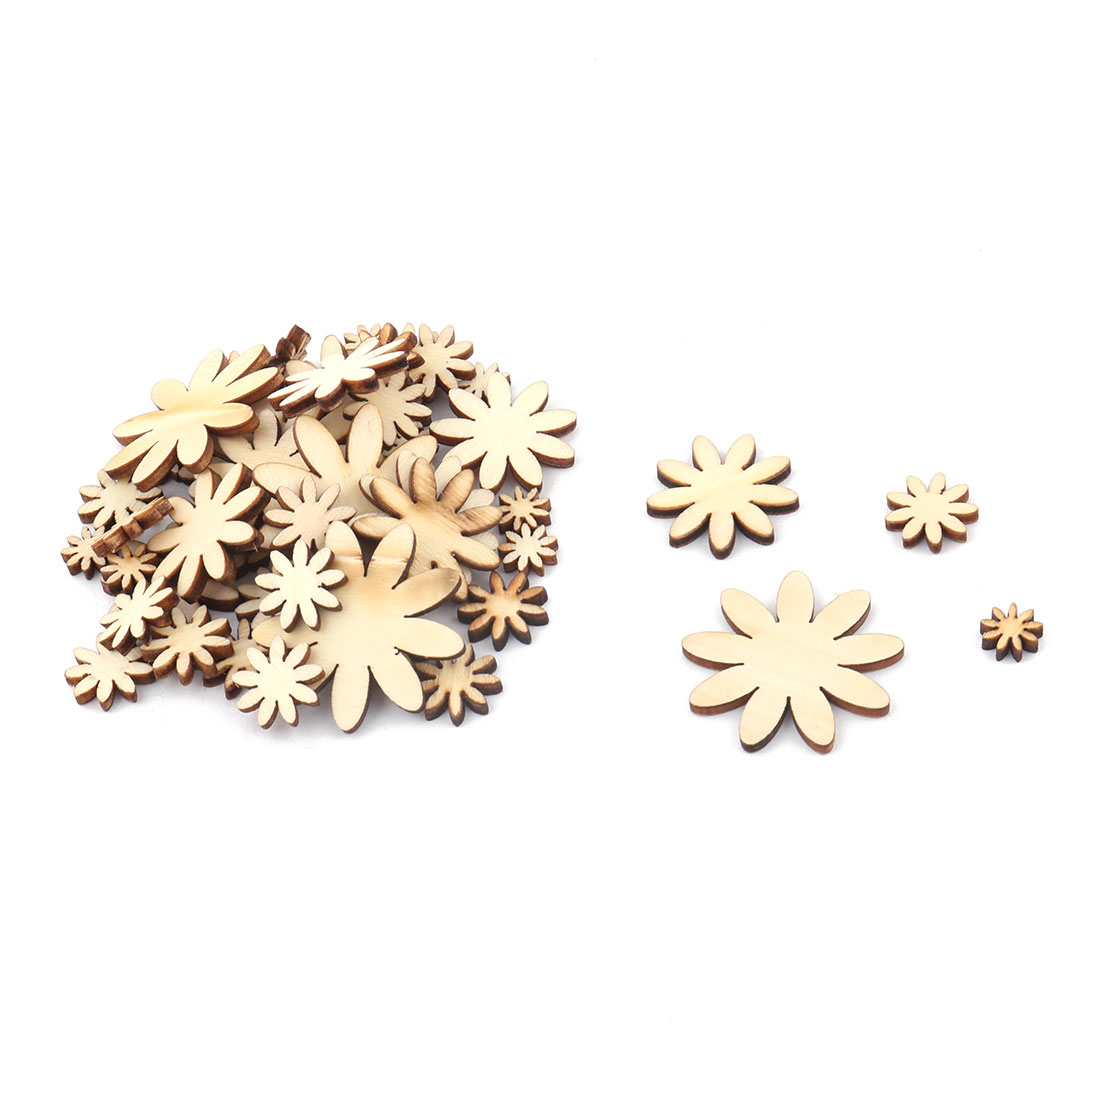 Holiday Wooden Slices Flower Shaped DIY Crafts Scrapbooking Sewing Accessories Beige 50 in 1